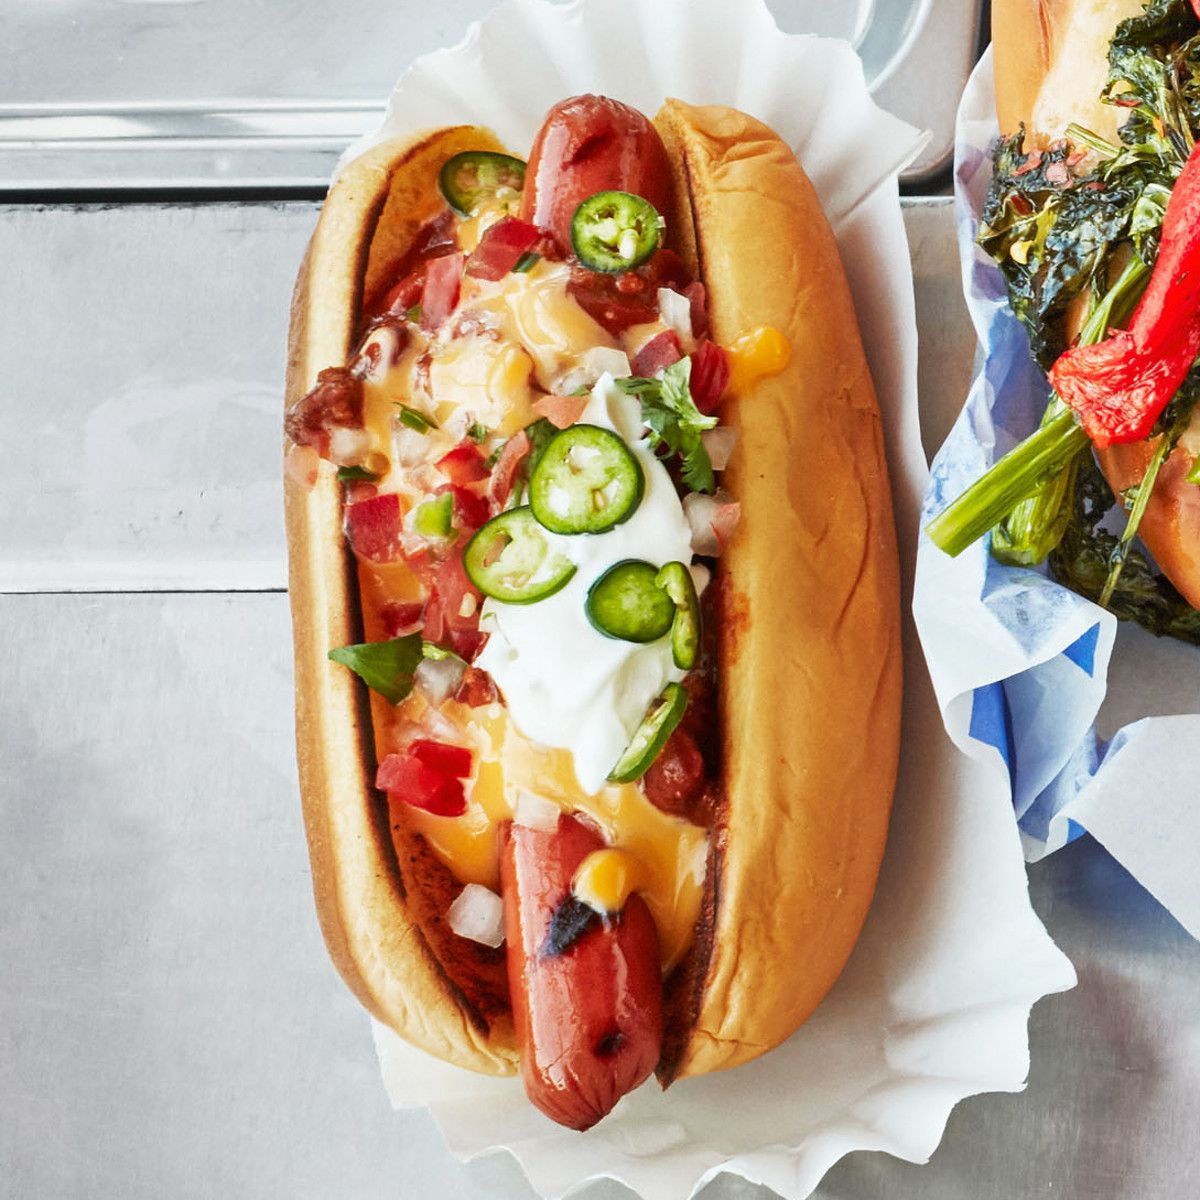 11 Baseball Stadium Hot Dogs Hot dog recipes, Hot dogs